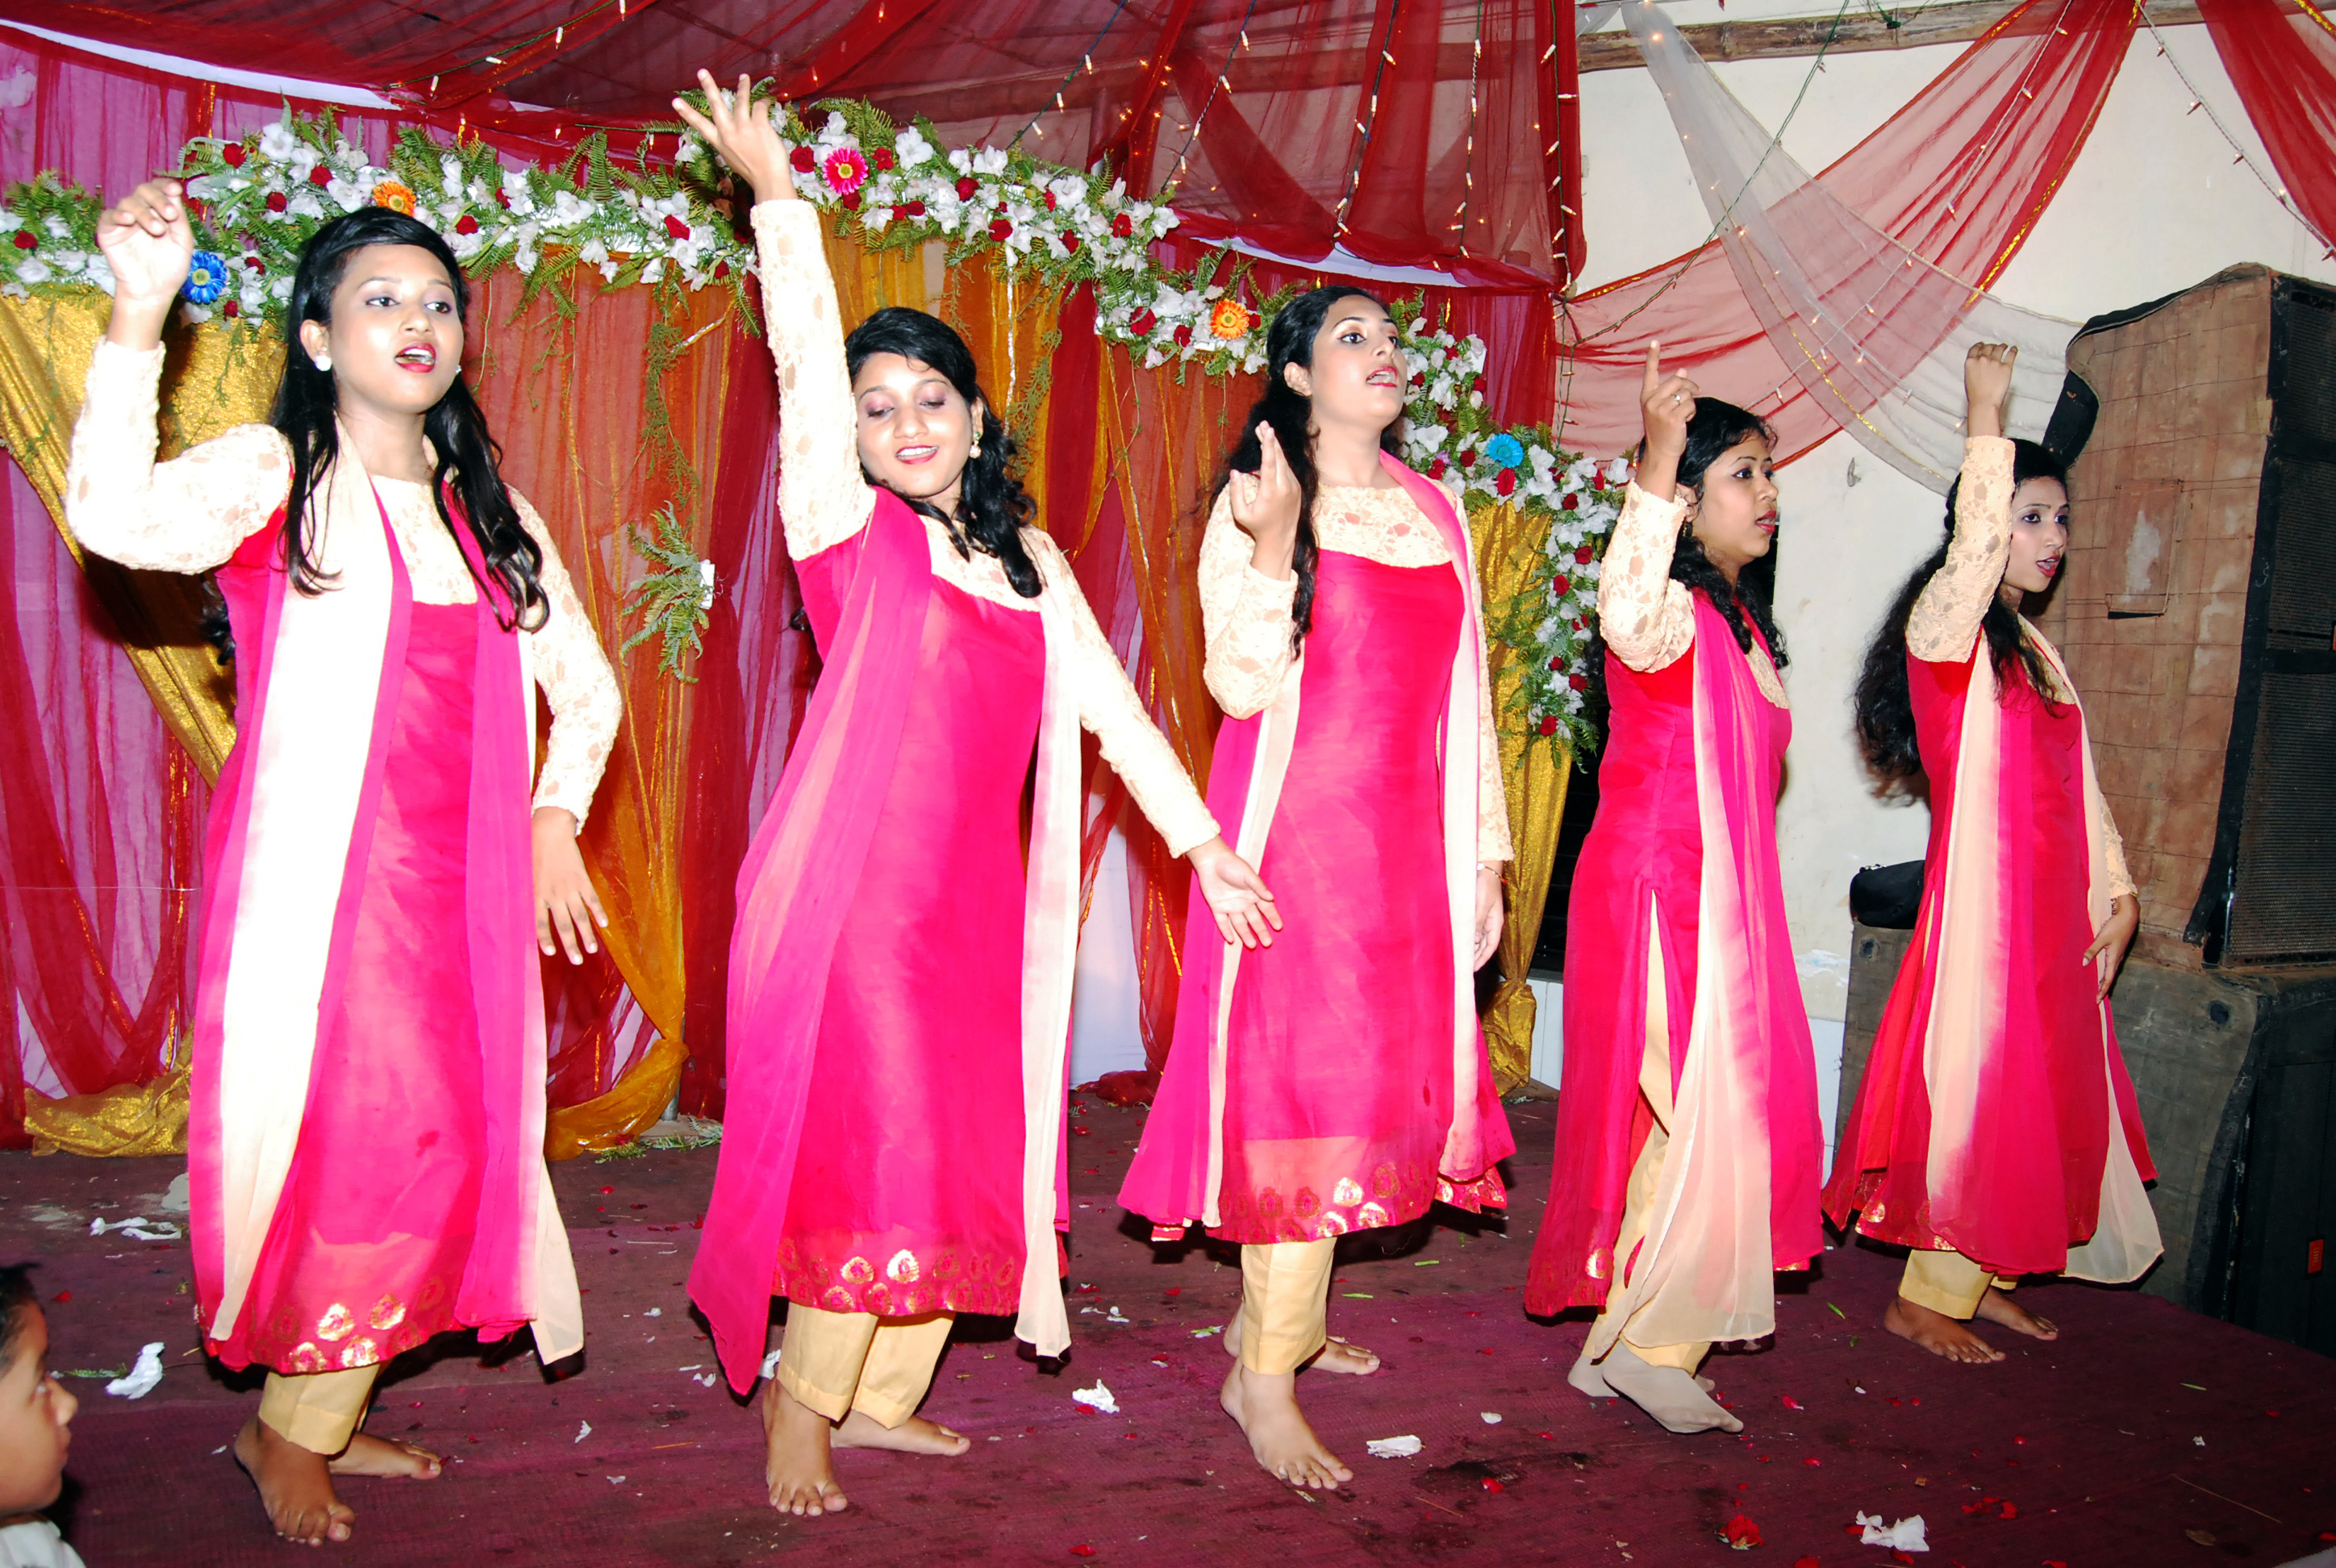 chittagong online dating Chittagong dating site is a high quality personals service we are a dedicated team providing online romance relationships for successful matchmaking singles from chittagong, bangladesh can.